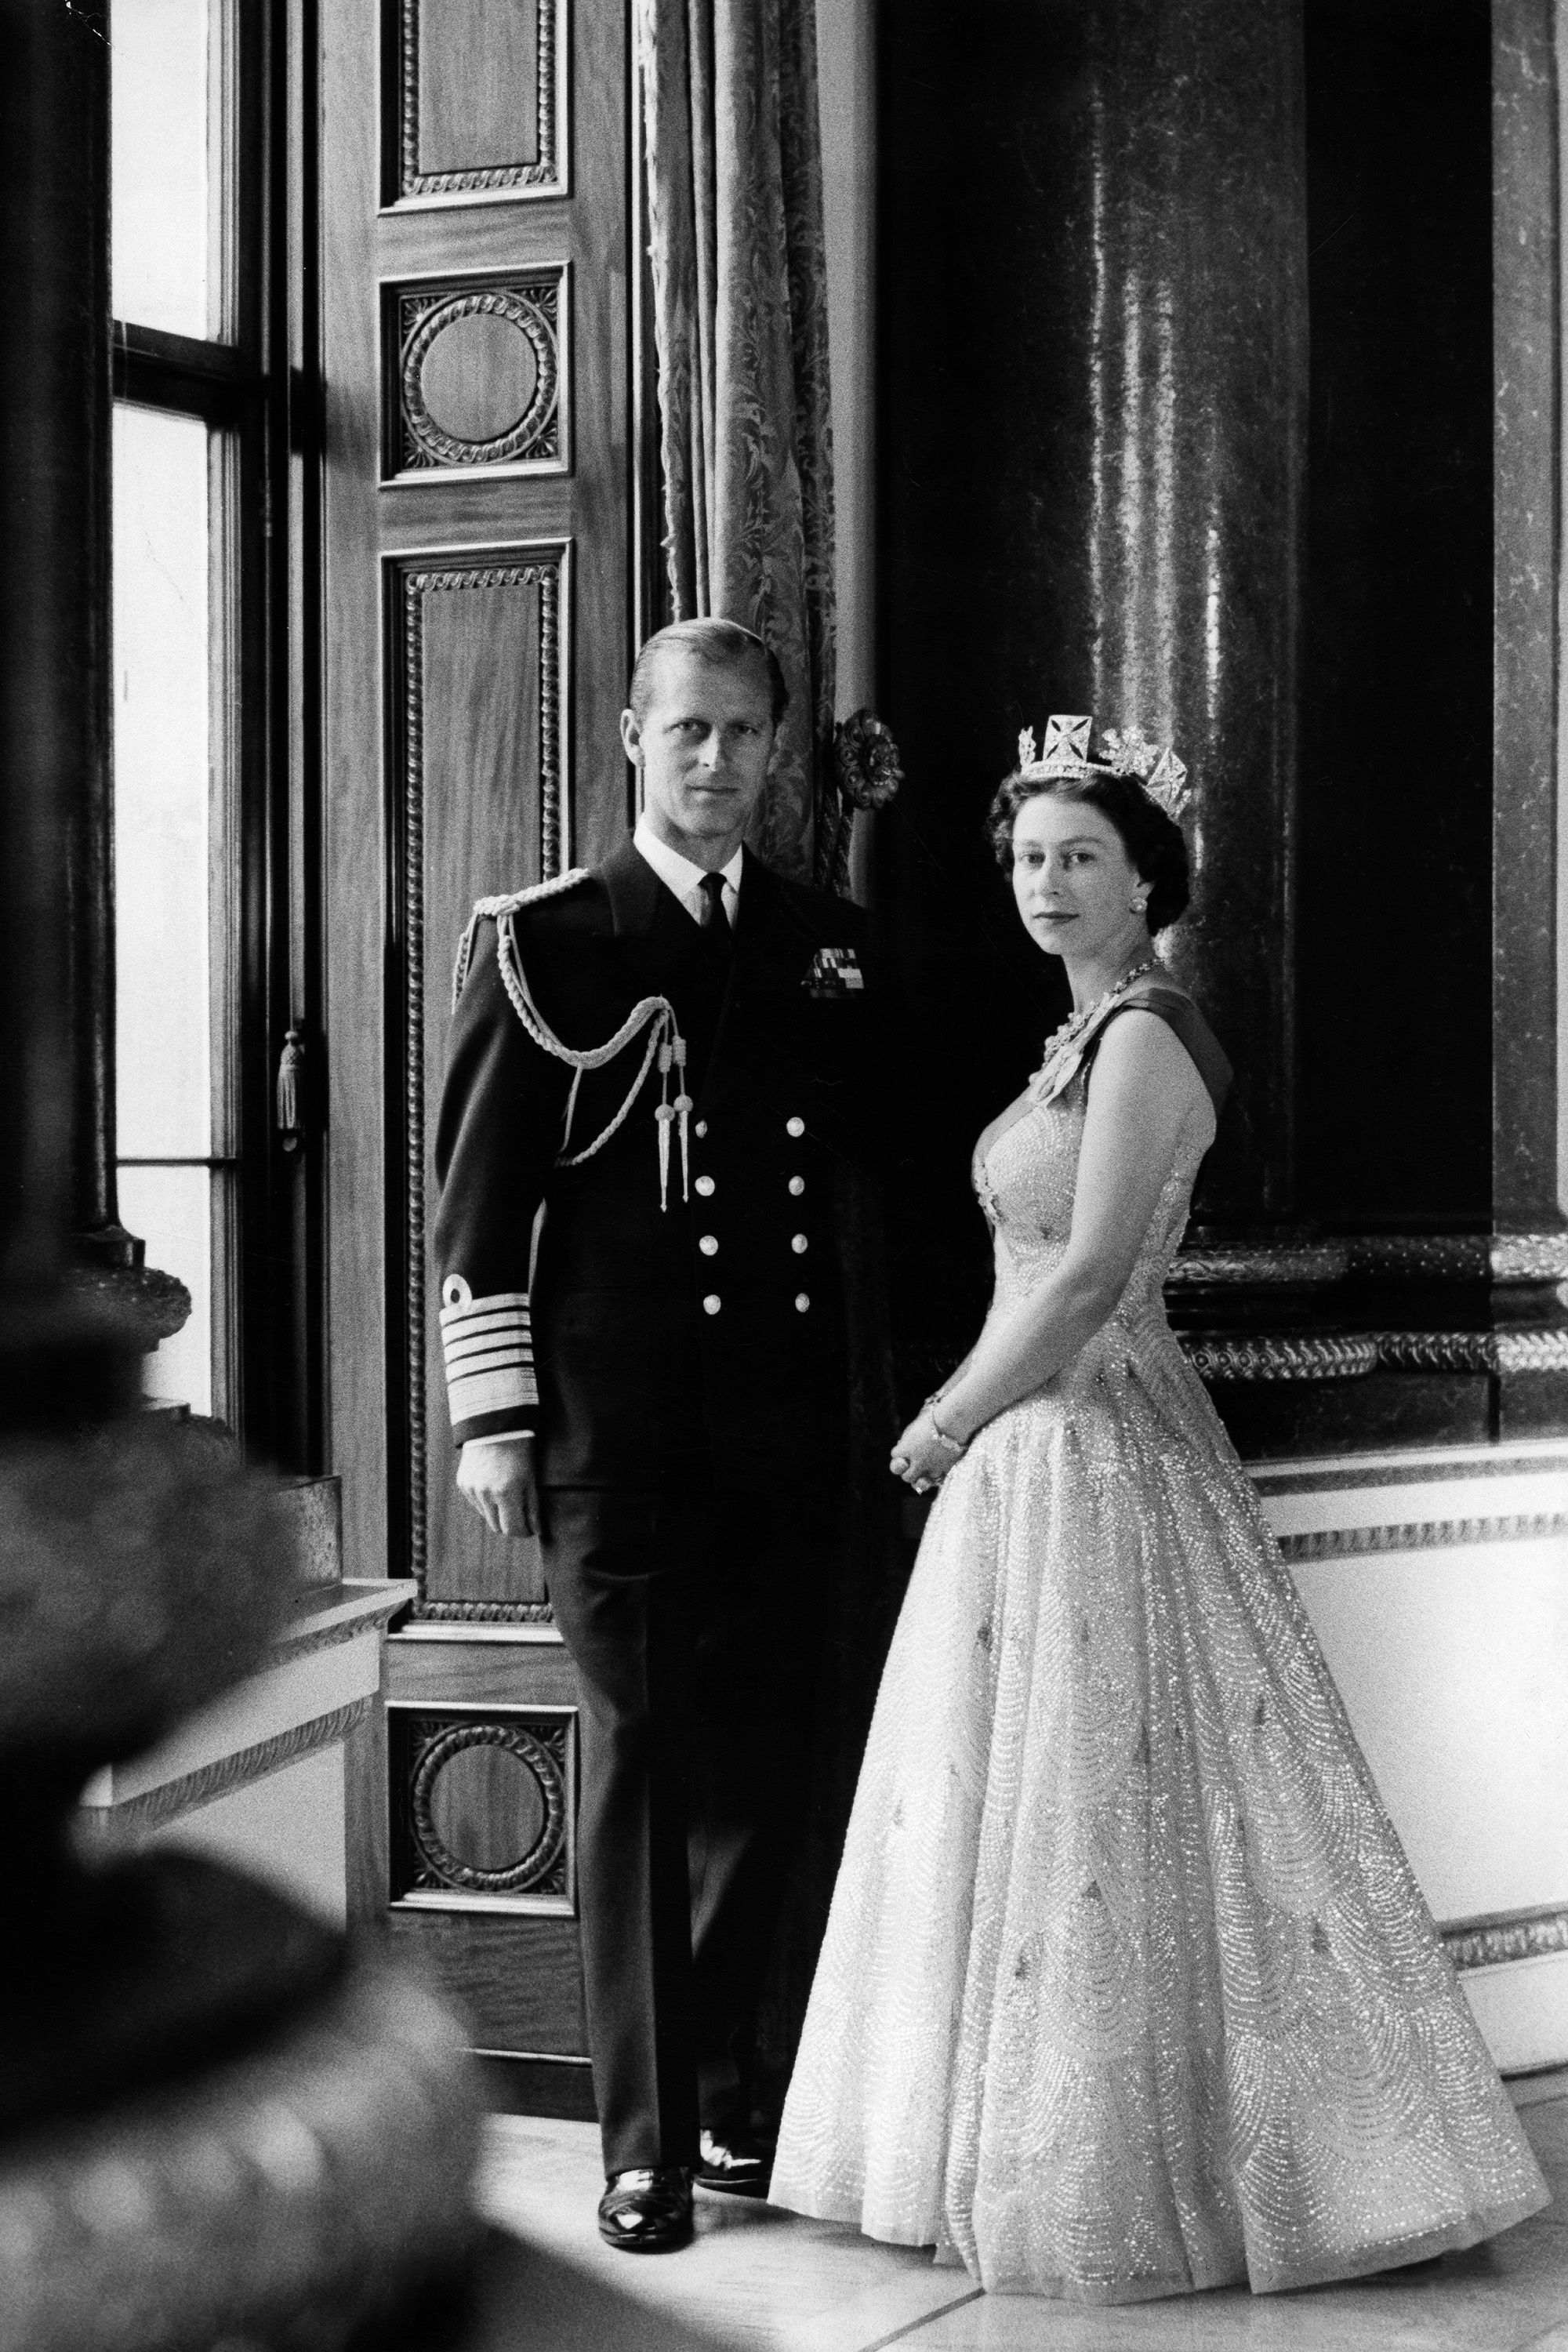 Queen Elizabeth Hochzeit In Photos Queen Elizabeth Through The Years Royals Princess